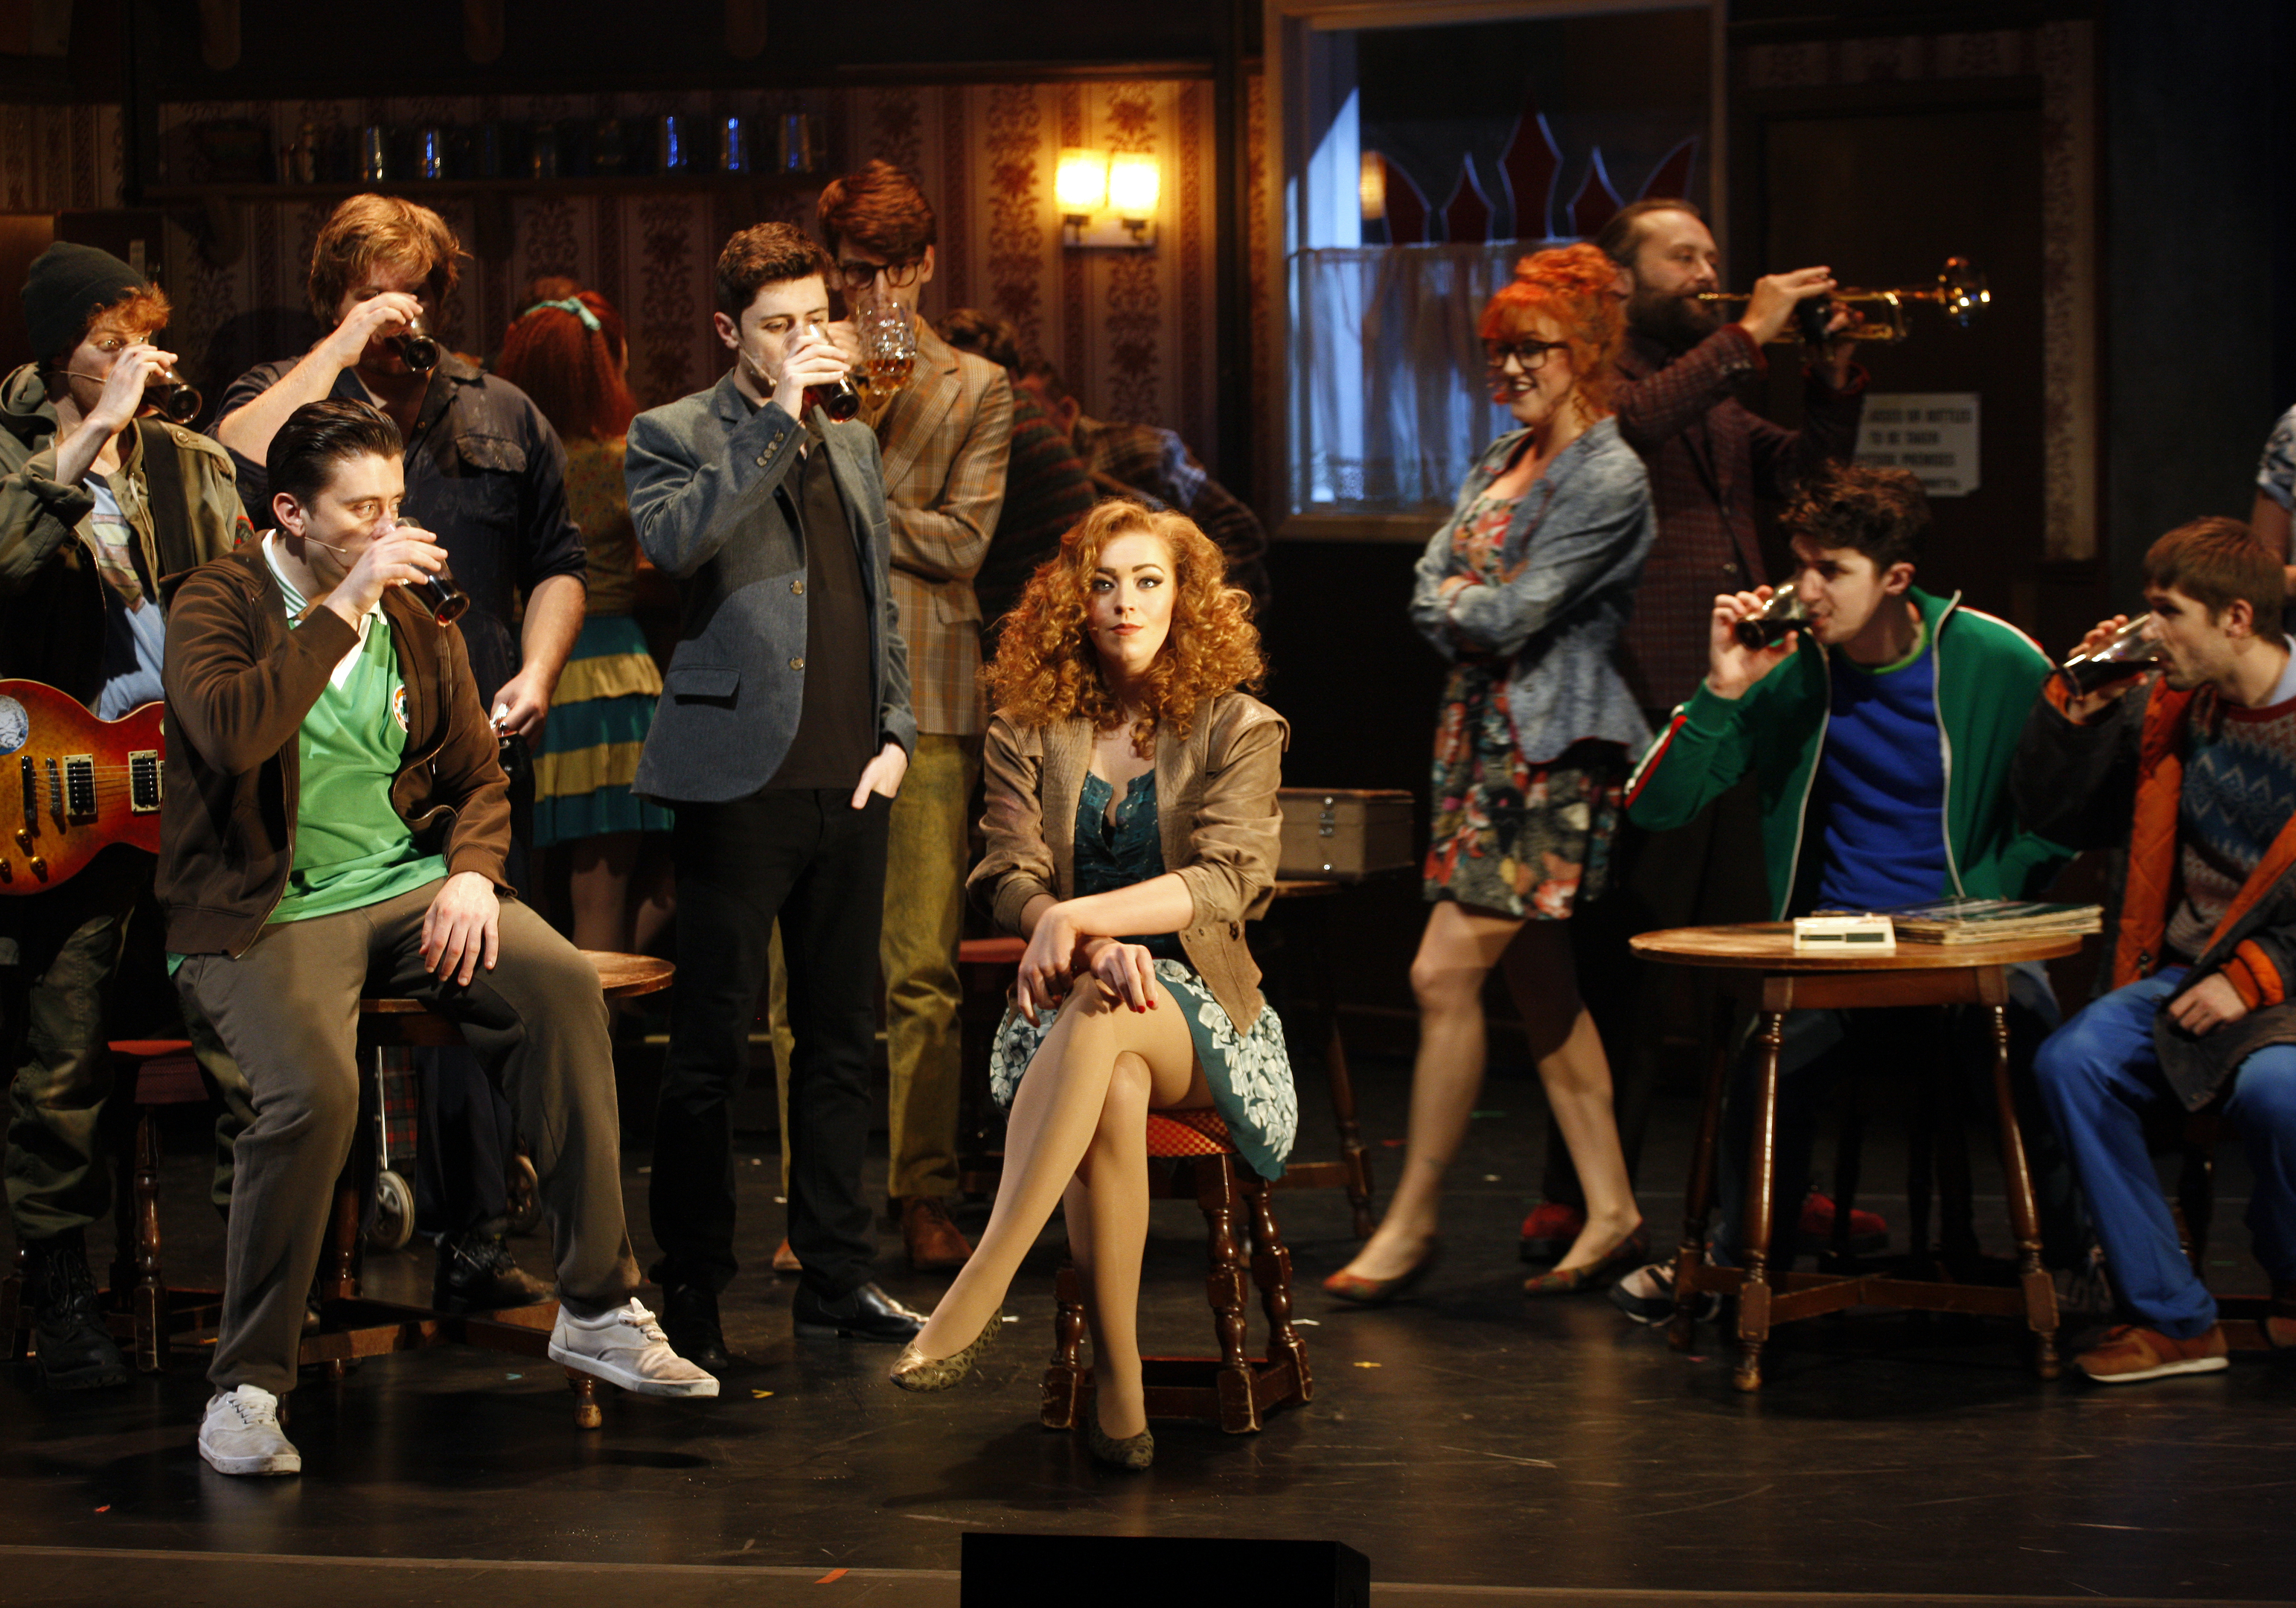 drama: a scene from the commitments